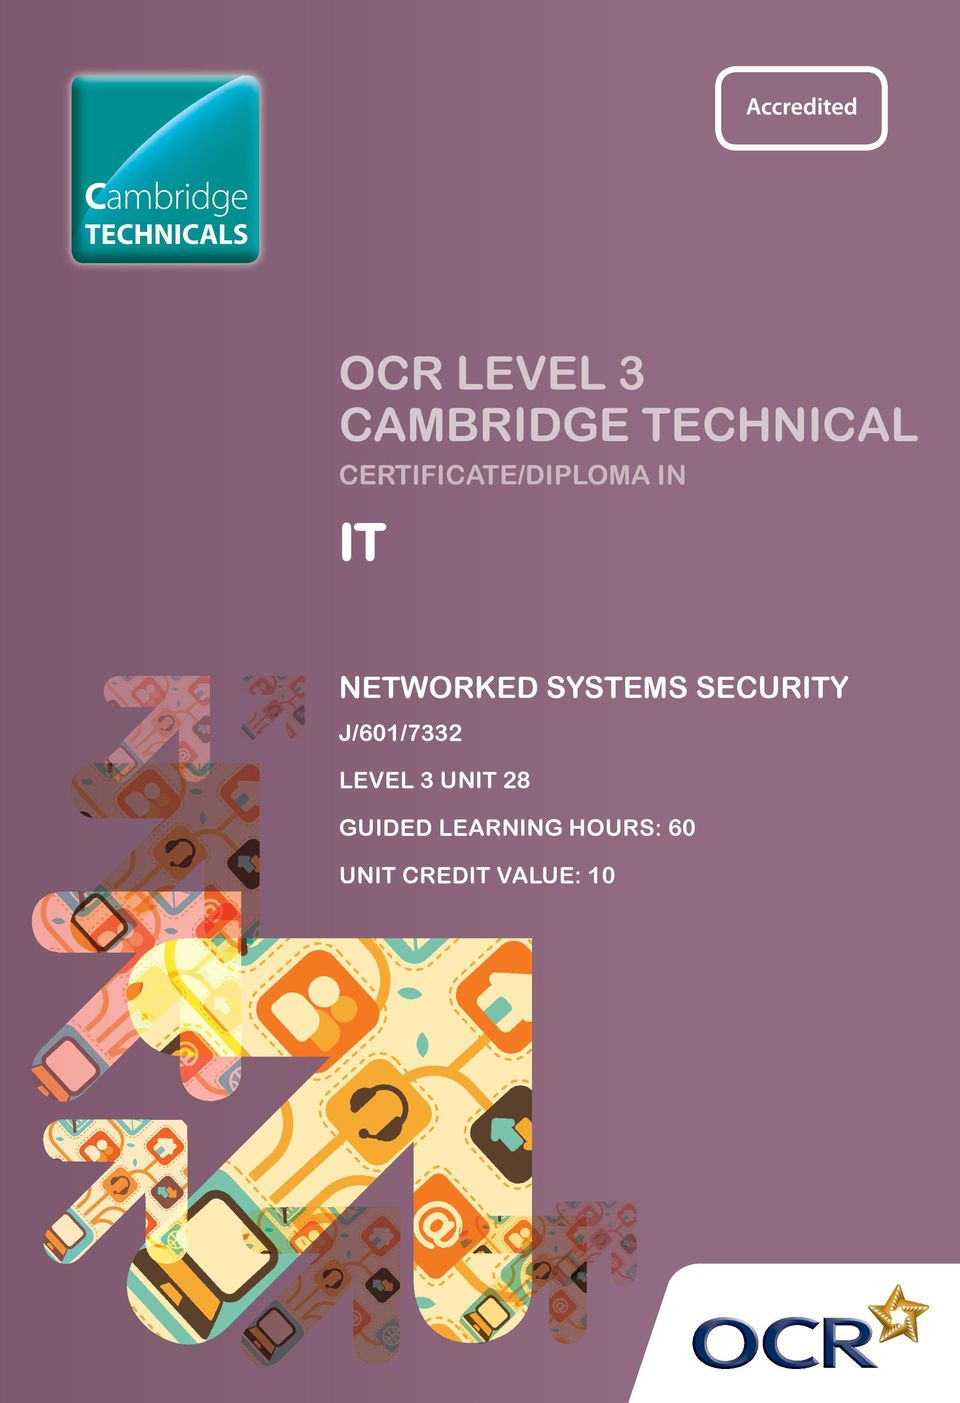 NETWORKED SYSTEMS SECURITY J/601/7332 LEVEL